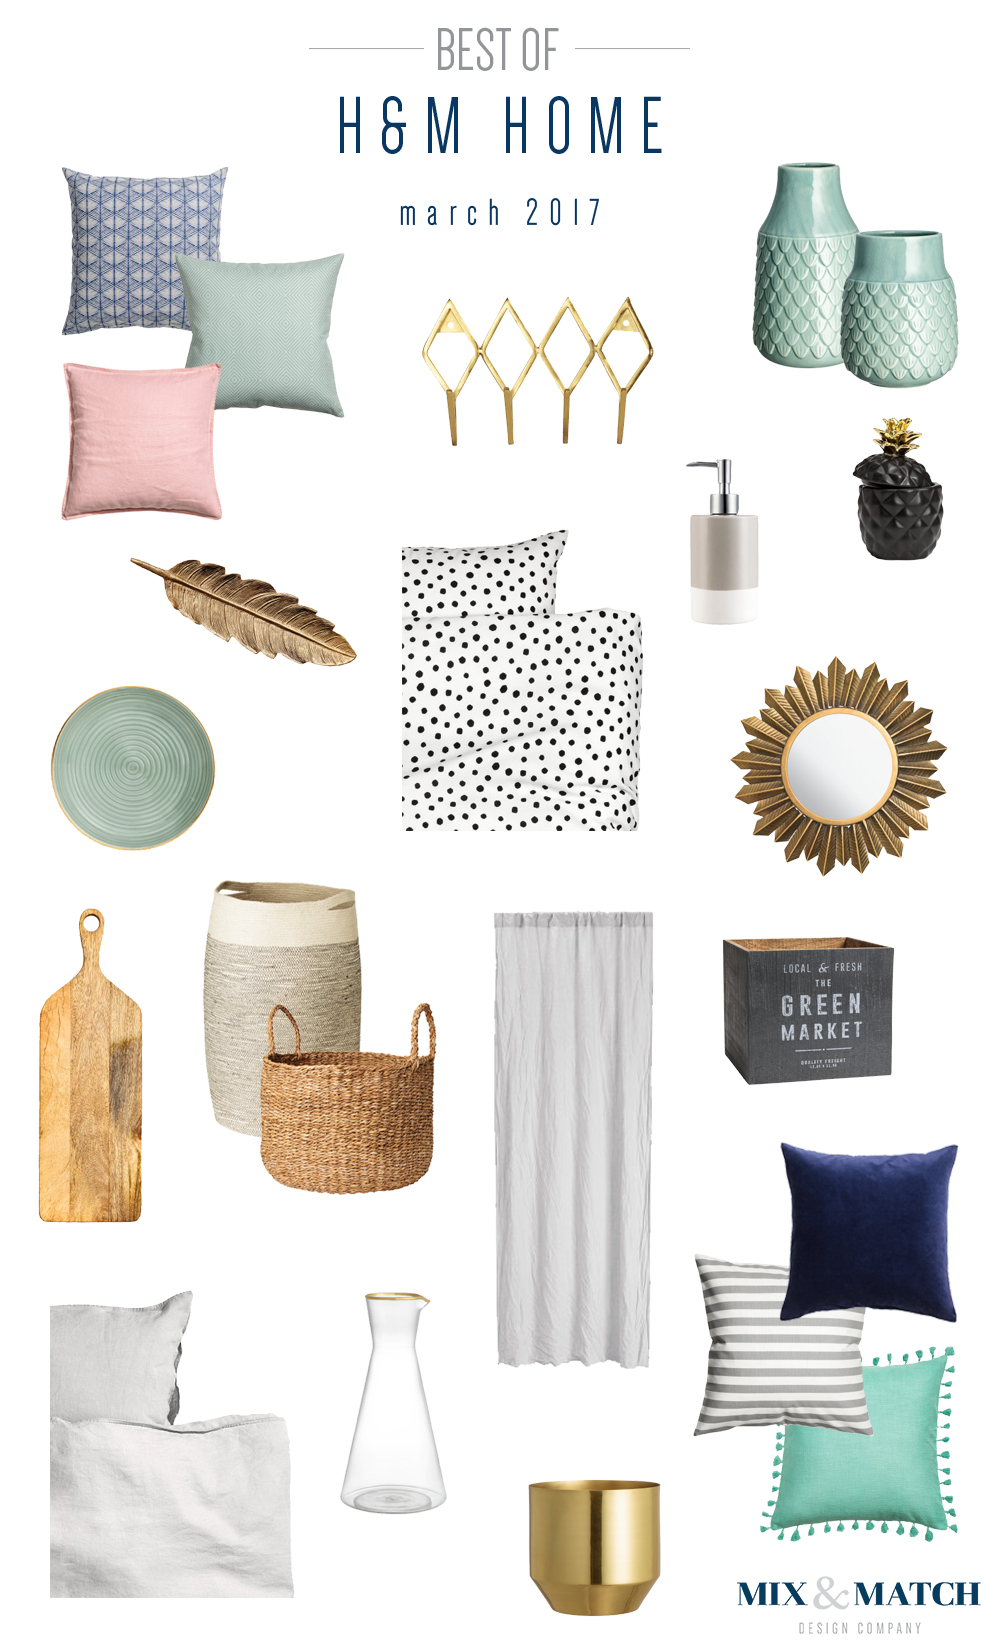 Shop the very best (affordable!) products from H&M home - curated by an interior designer!